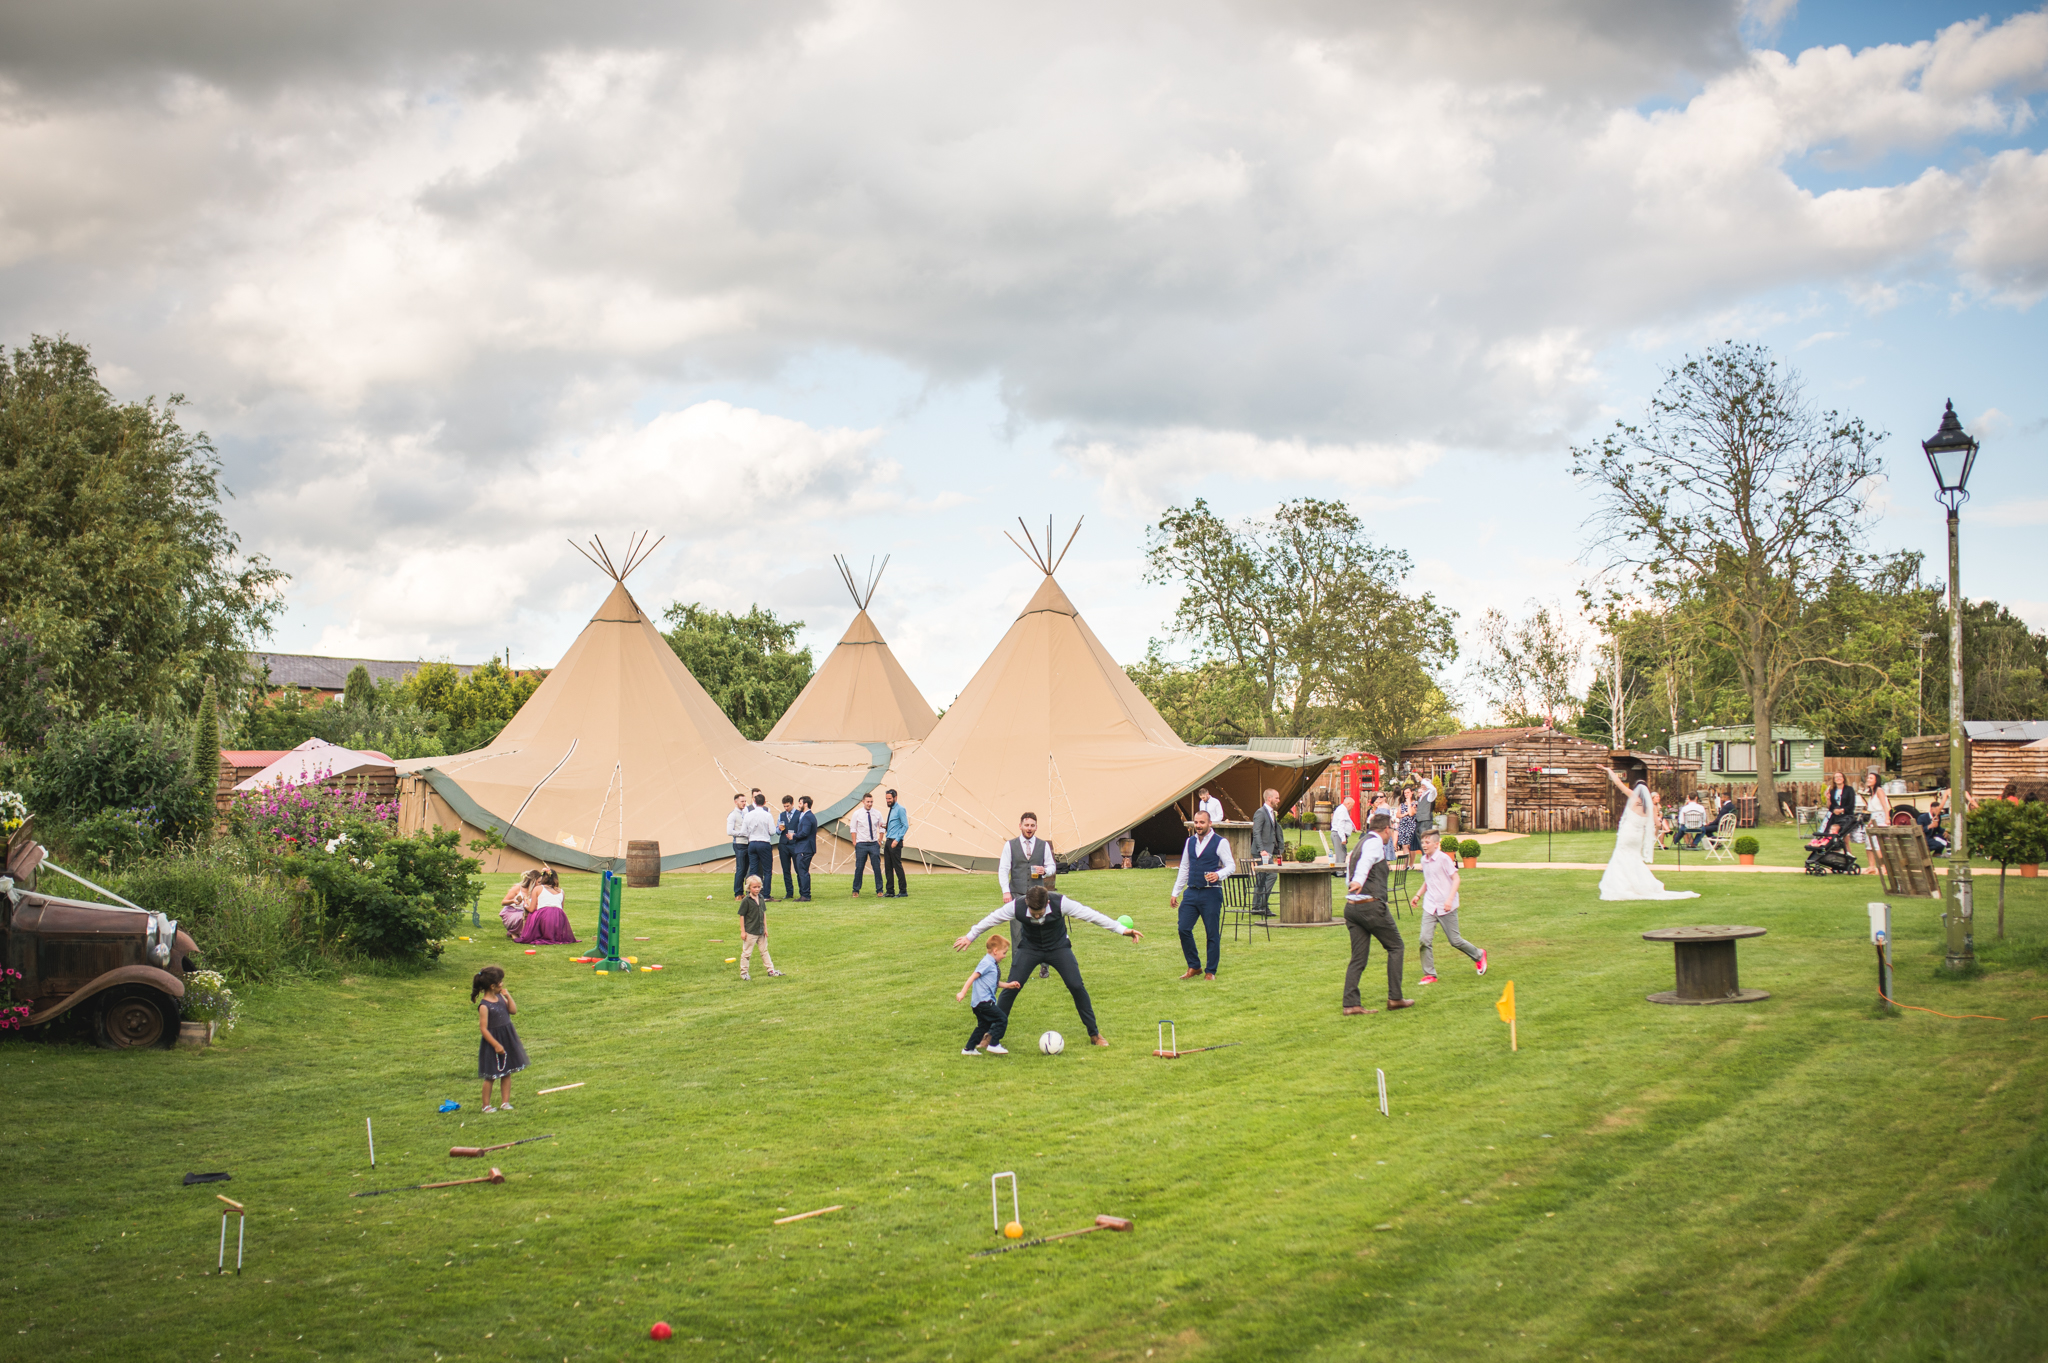 PapaKata Teepees at Skipbridge Country Wedding Venue captured by Will Hey Photography